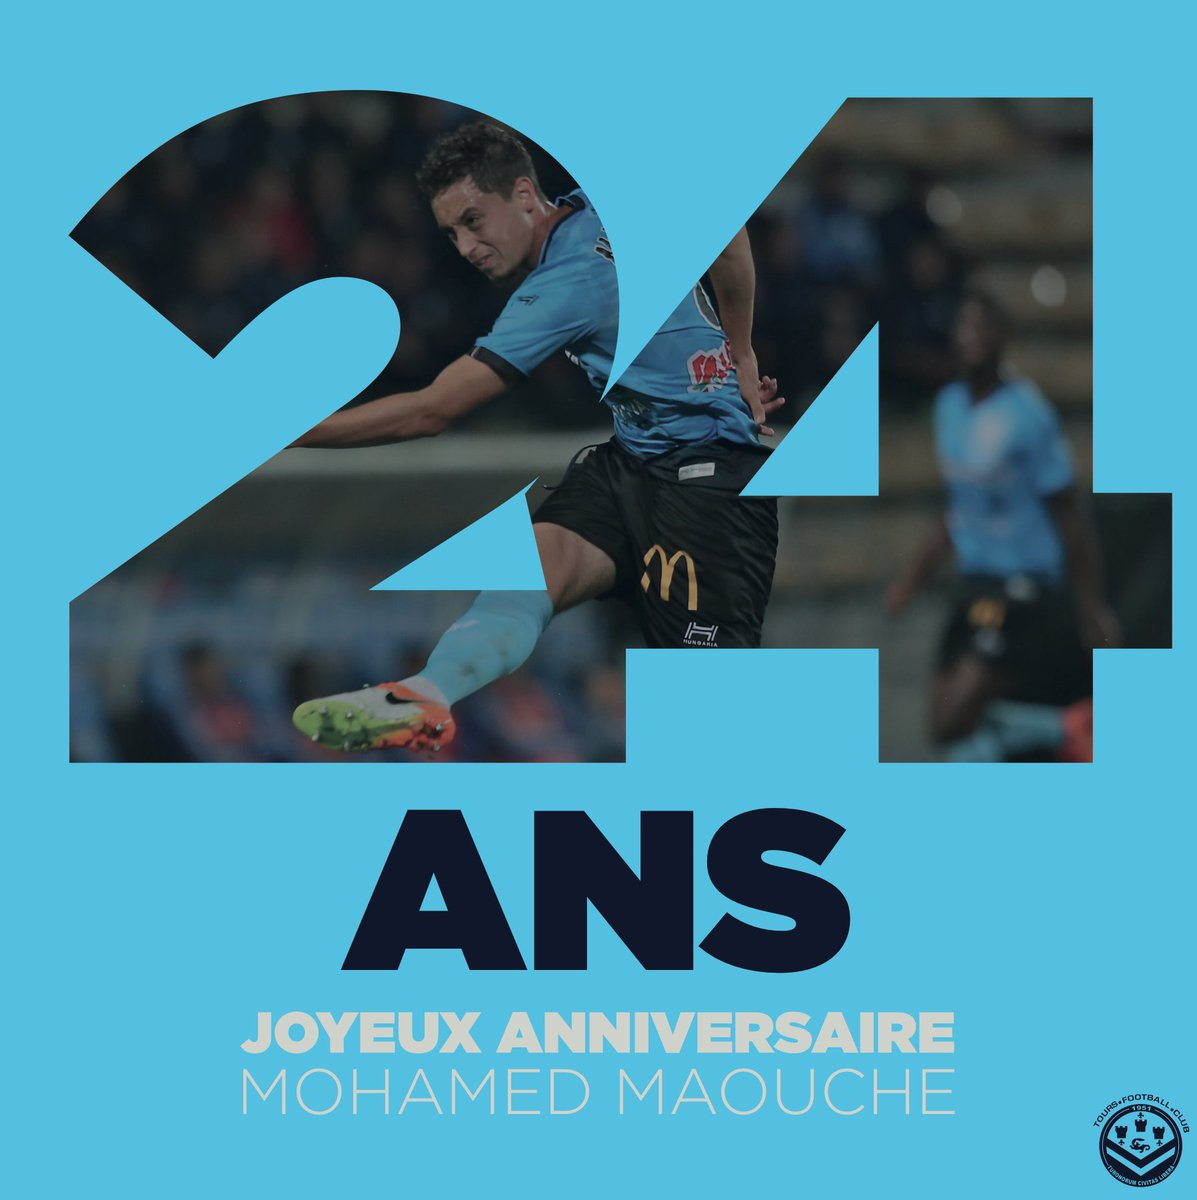 Tours Football Club On Twitter Anniversaire Nous Souhaitons